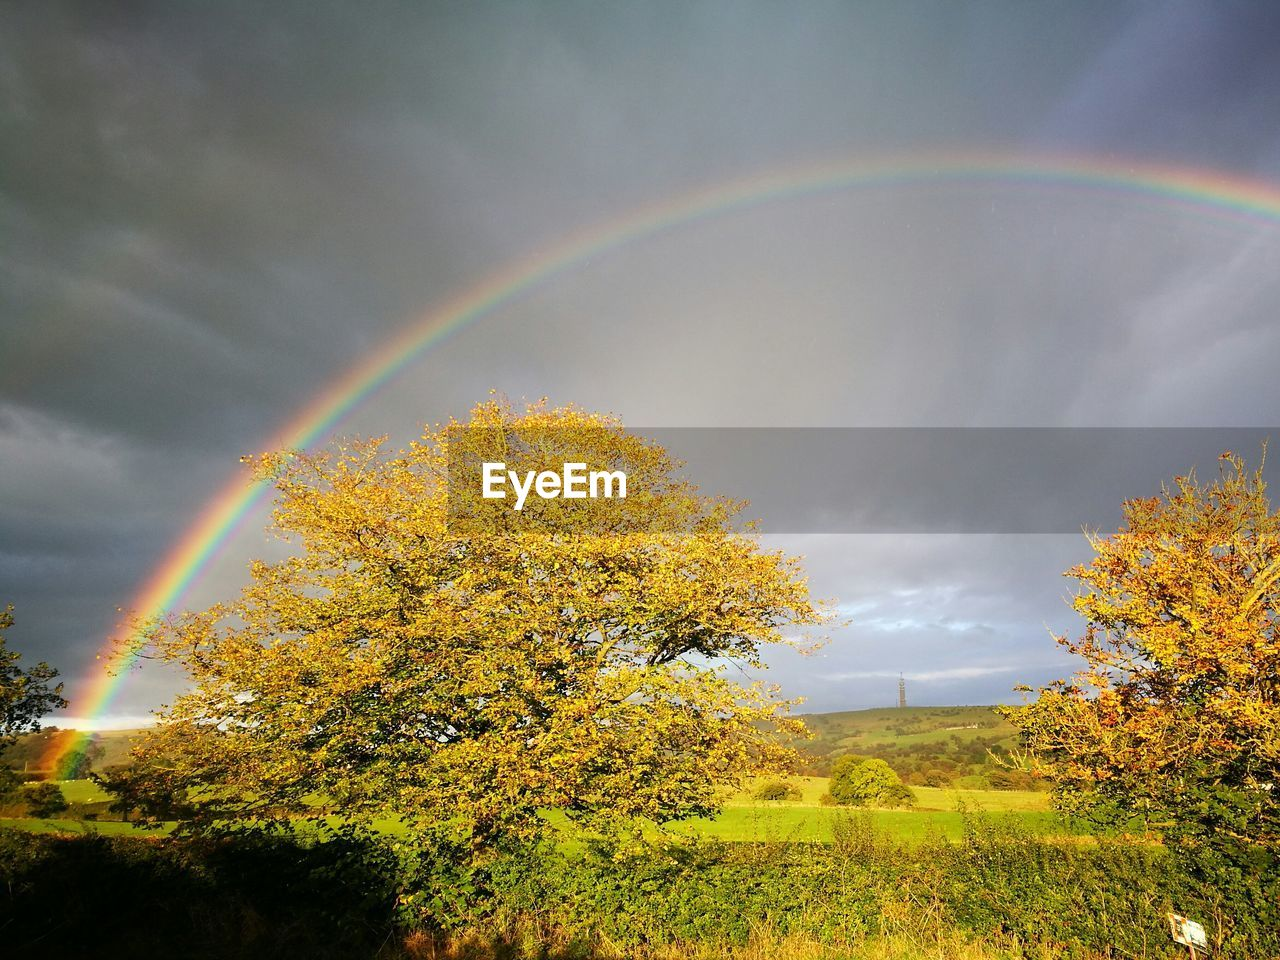 rainbow, double rainbow, beauty in nature, nature, idyllic, scenics, tranquility, tranquil scene, tree, no people, weather, multi colored, cloud - sky, day, sky, outdoors, spectrum, natural phenomenon, growth